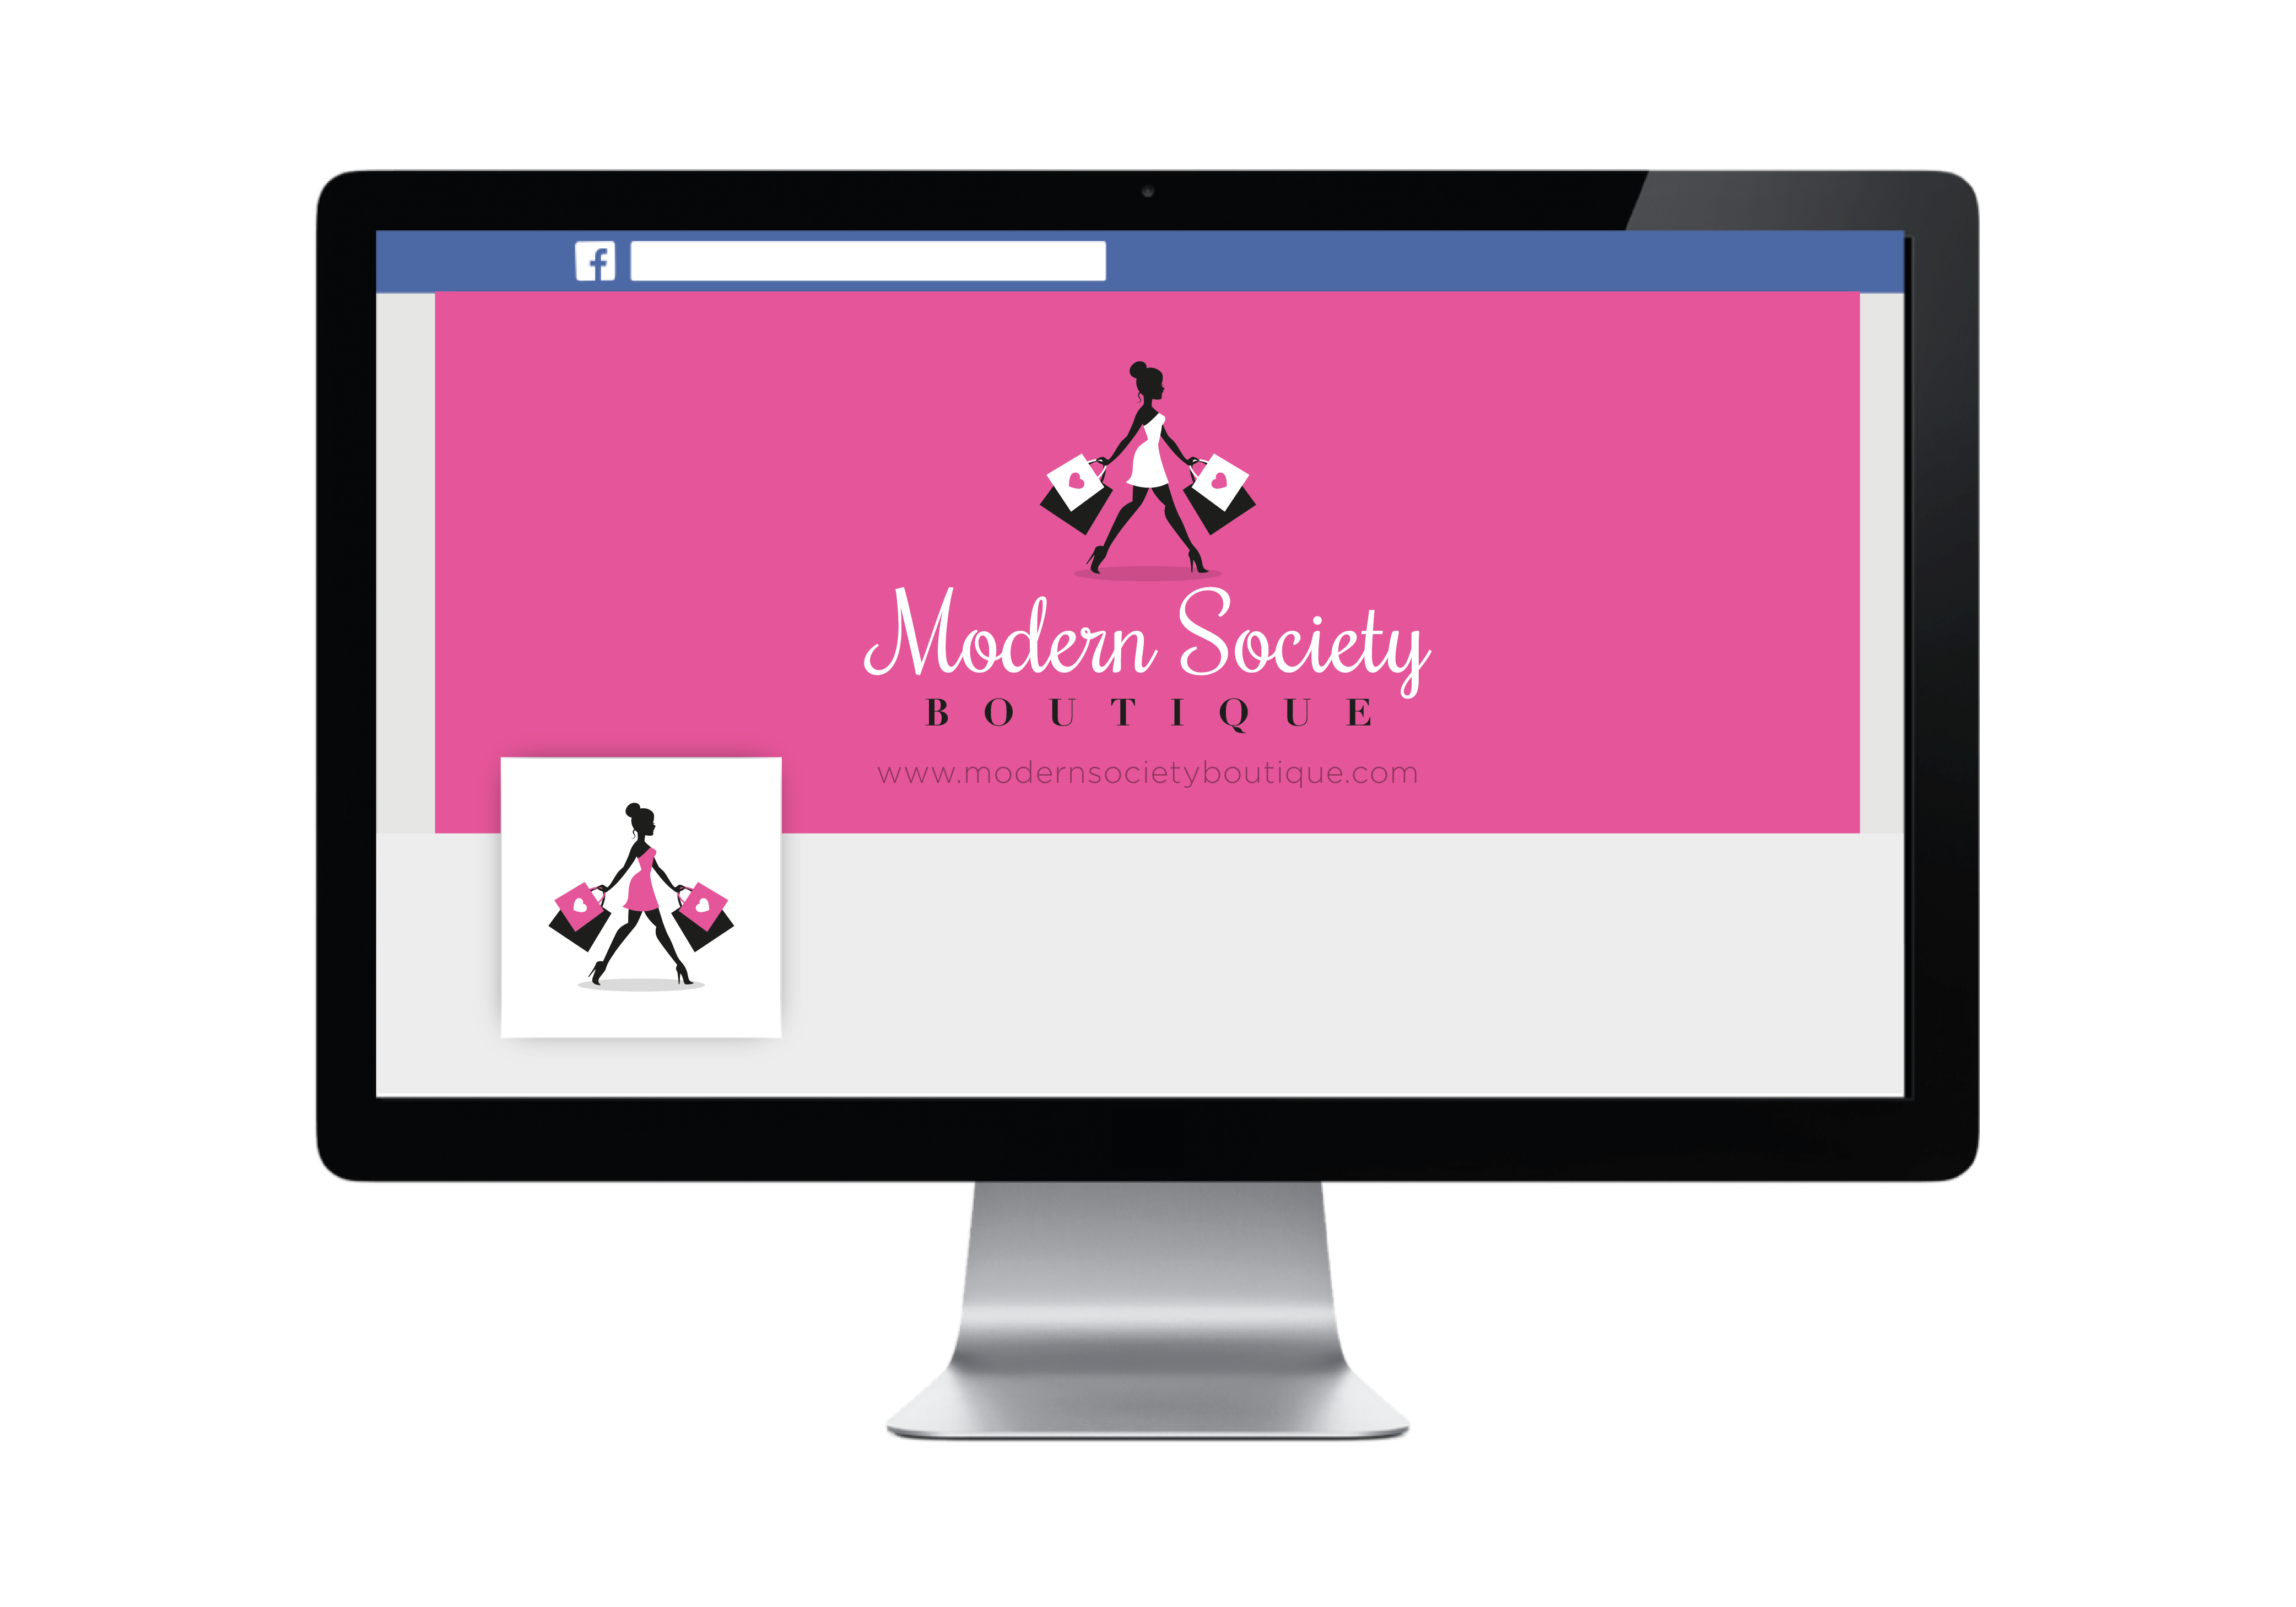 Design a chic, modern logo for online women's clothing boutique